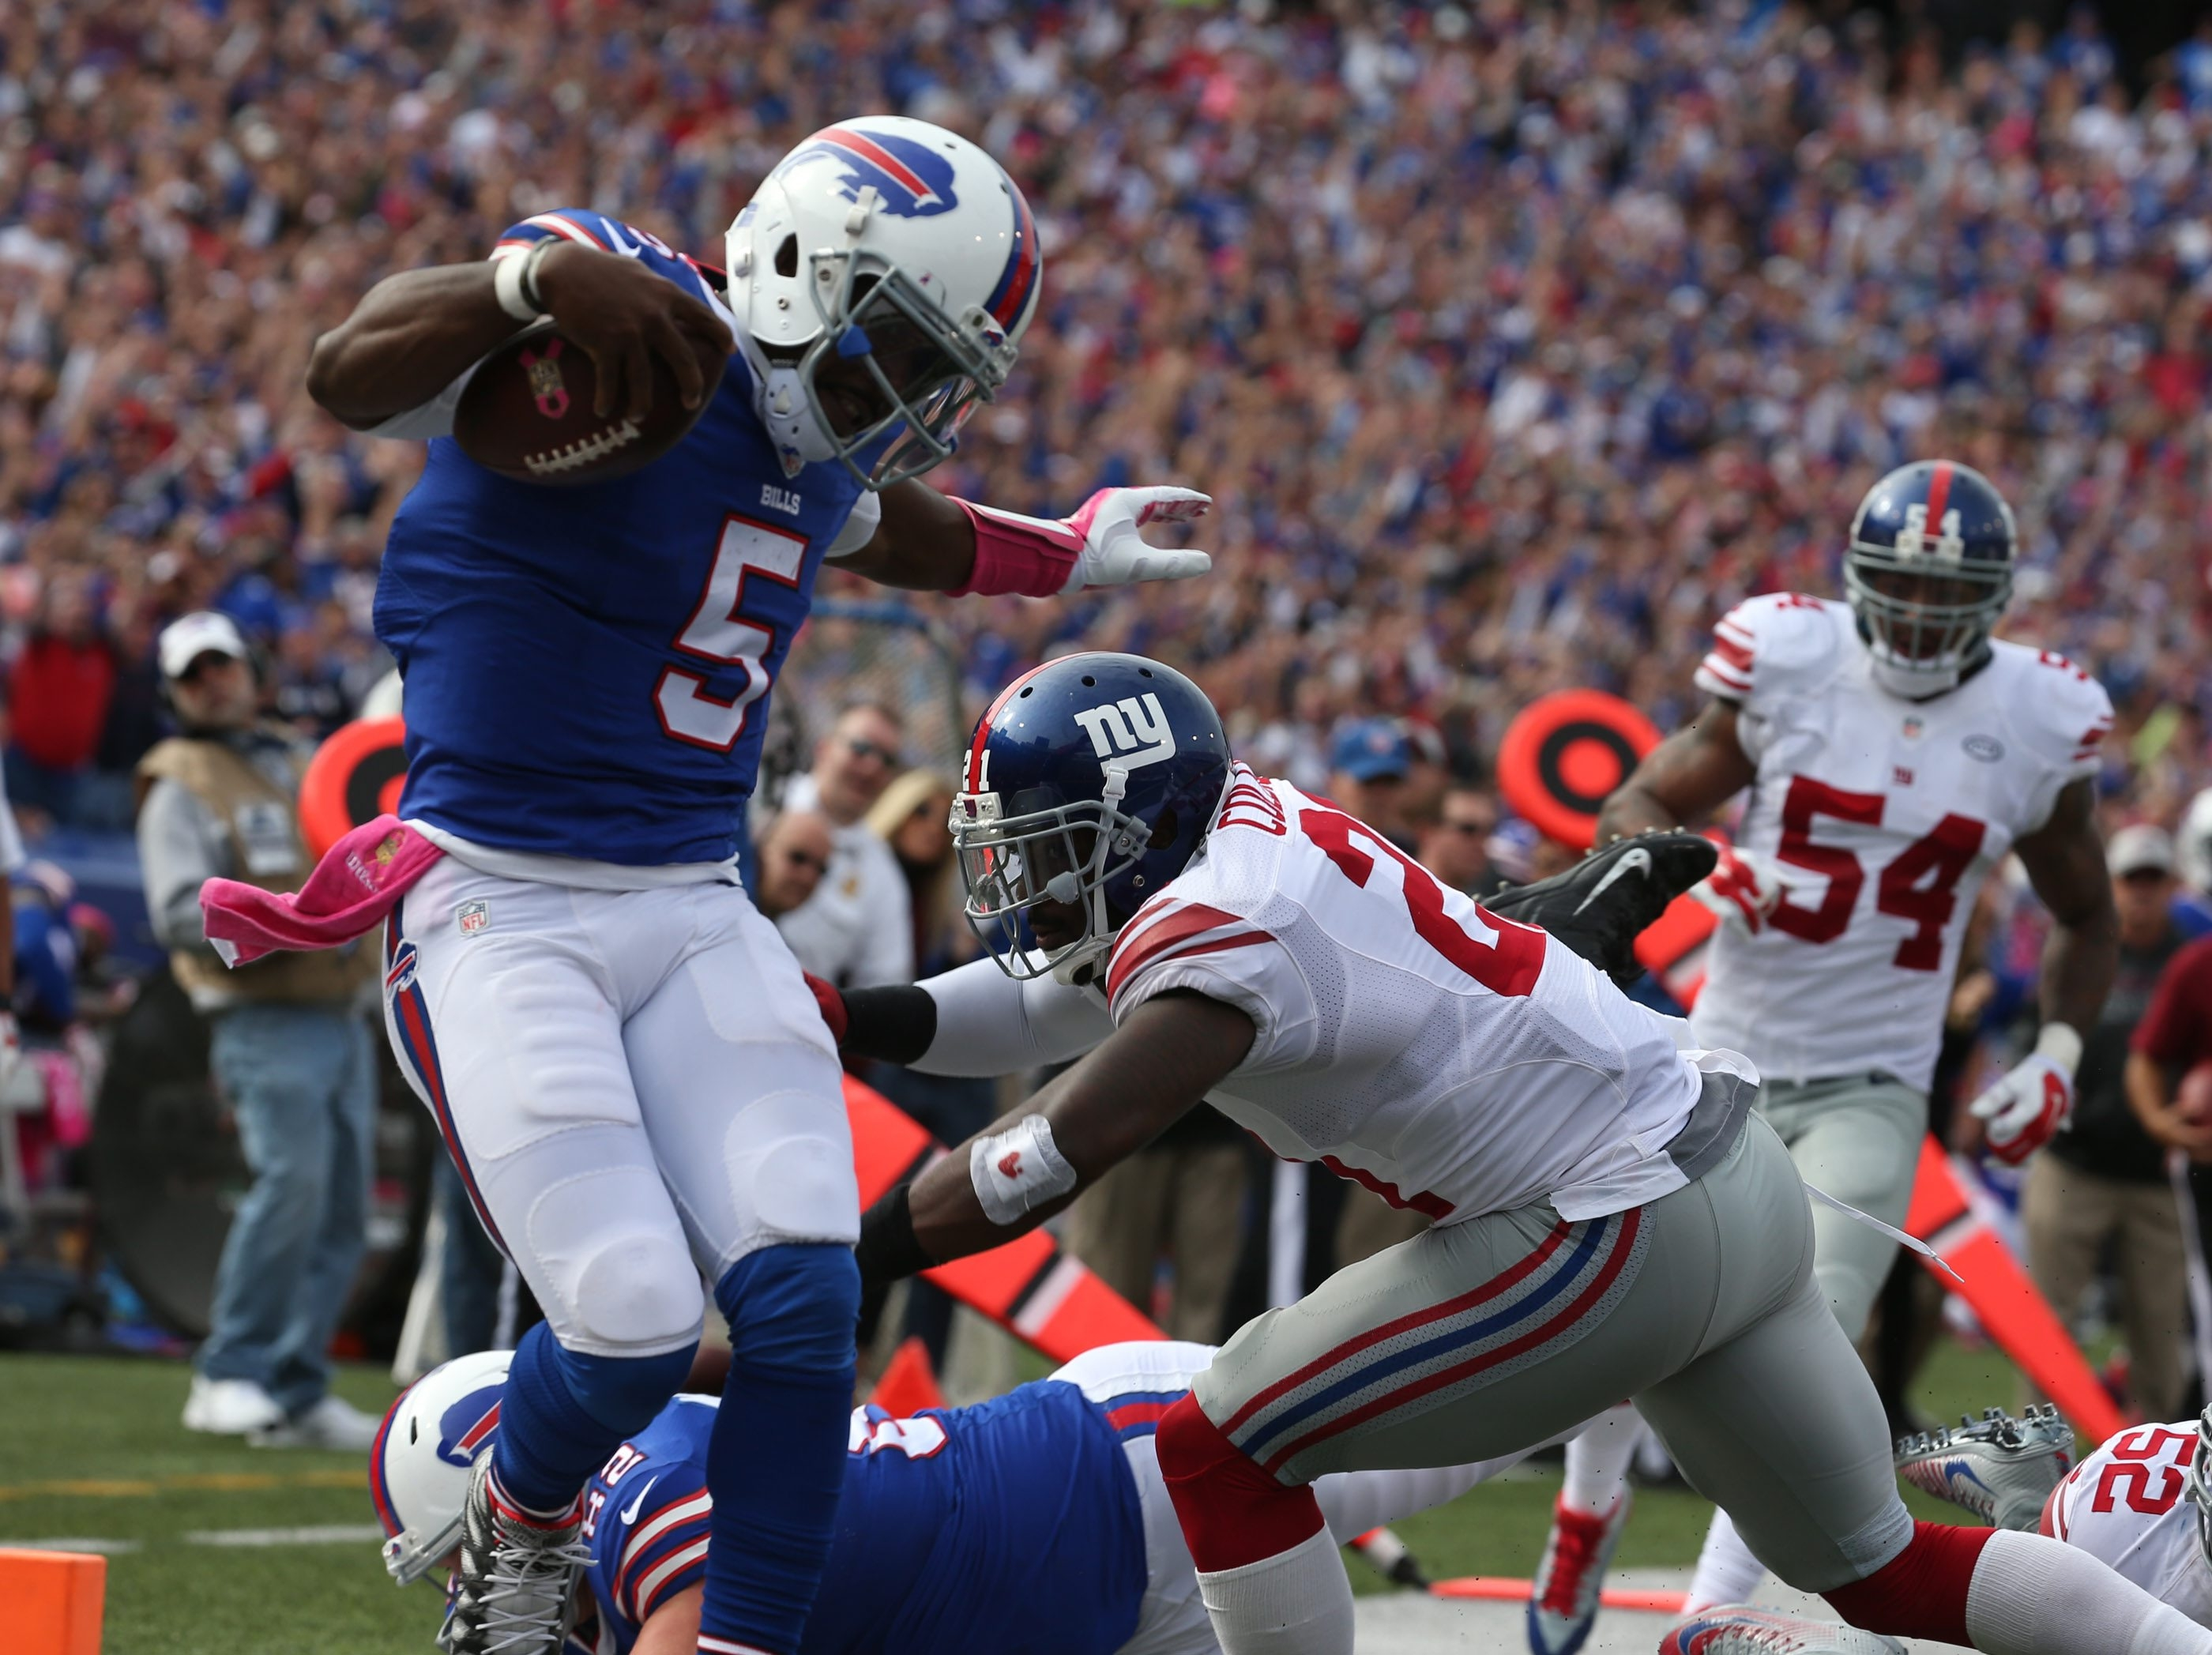 Buffalo Bills quarterback Tyrod Taylor (5) rushed for a touchdown but was called back on a penally in the third quarter at Ralph Wilson Stadium in Orchard Park,NY on Sunday, Oct. 4, 2015.  (James P. McCoy/ Buffalo News)